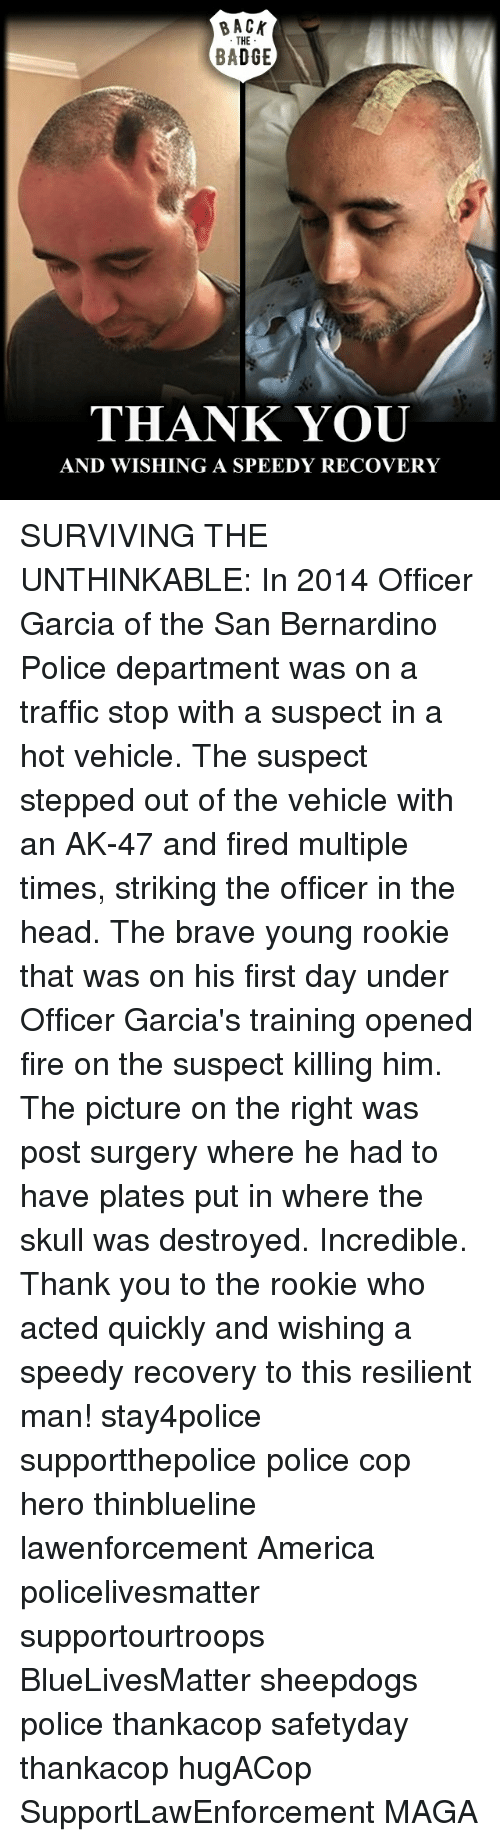 Memes, Ak-47, and 🤖: BACK  THE  BADGE  THANK YOU  AND WISHING A SPEEDY RECOVERY SURVIVING THE UNTHINKABLE: In 2014 Officer Garcia of the San Bernardino Police department was on a traffic stop with a suspect in a hot vehicle. The suspect stepped out of the vehicle with an AK-47 and fired multiple times, striking the officer in the head. The brave young rookie that was on his first day under Officer Garcia's training opened fire on the suspect killing him. The picture on the right was post surgery where he had to have plates put in where the skull was destroyed. Incredible. Thank you to the rookie who acted quickly and wishing a speedy recovery to this resilient man! stay4police supportthepolice police cop hero thinblueline lawenforcement America policelivesmatter supportourtroops BlueLivesMatter sheepdogs police thankacop safetyday thankacop hugACop SupportLawEnforcement MAGA